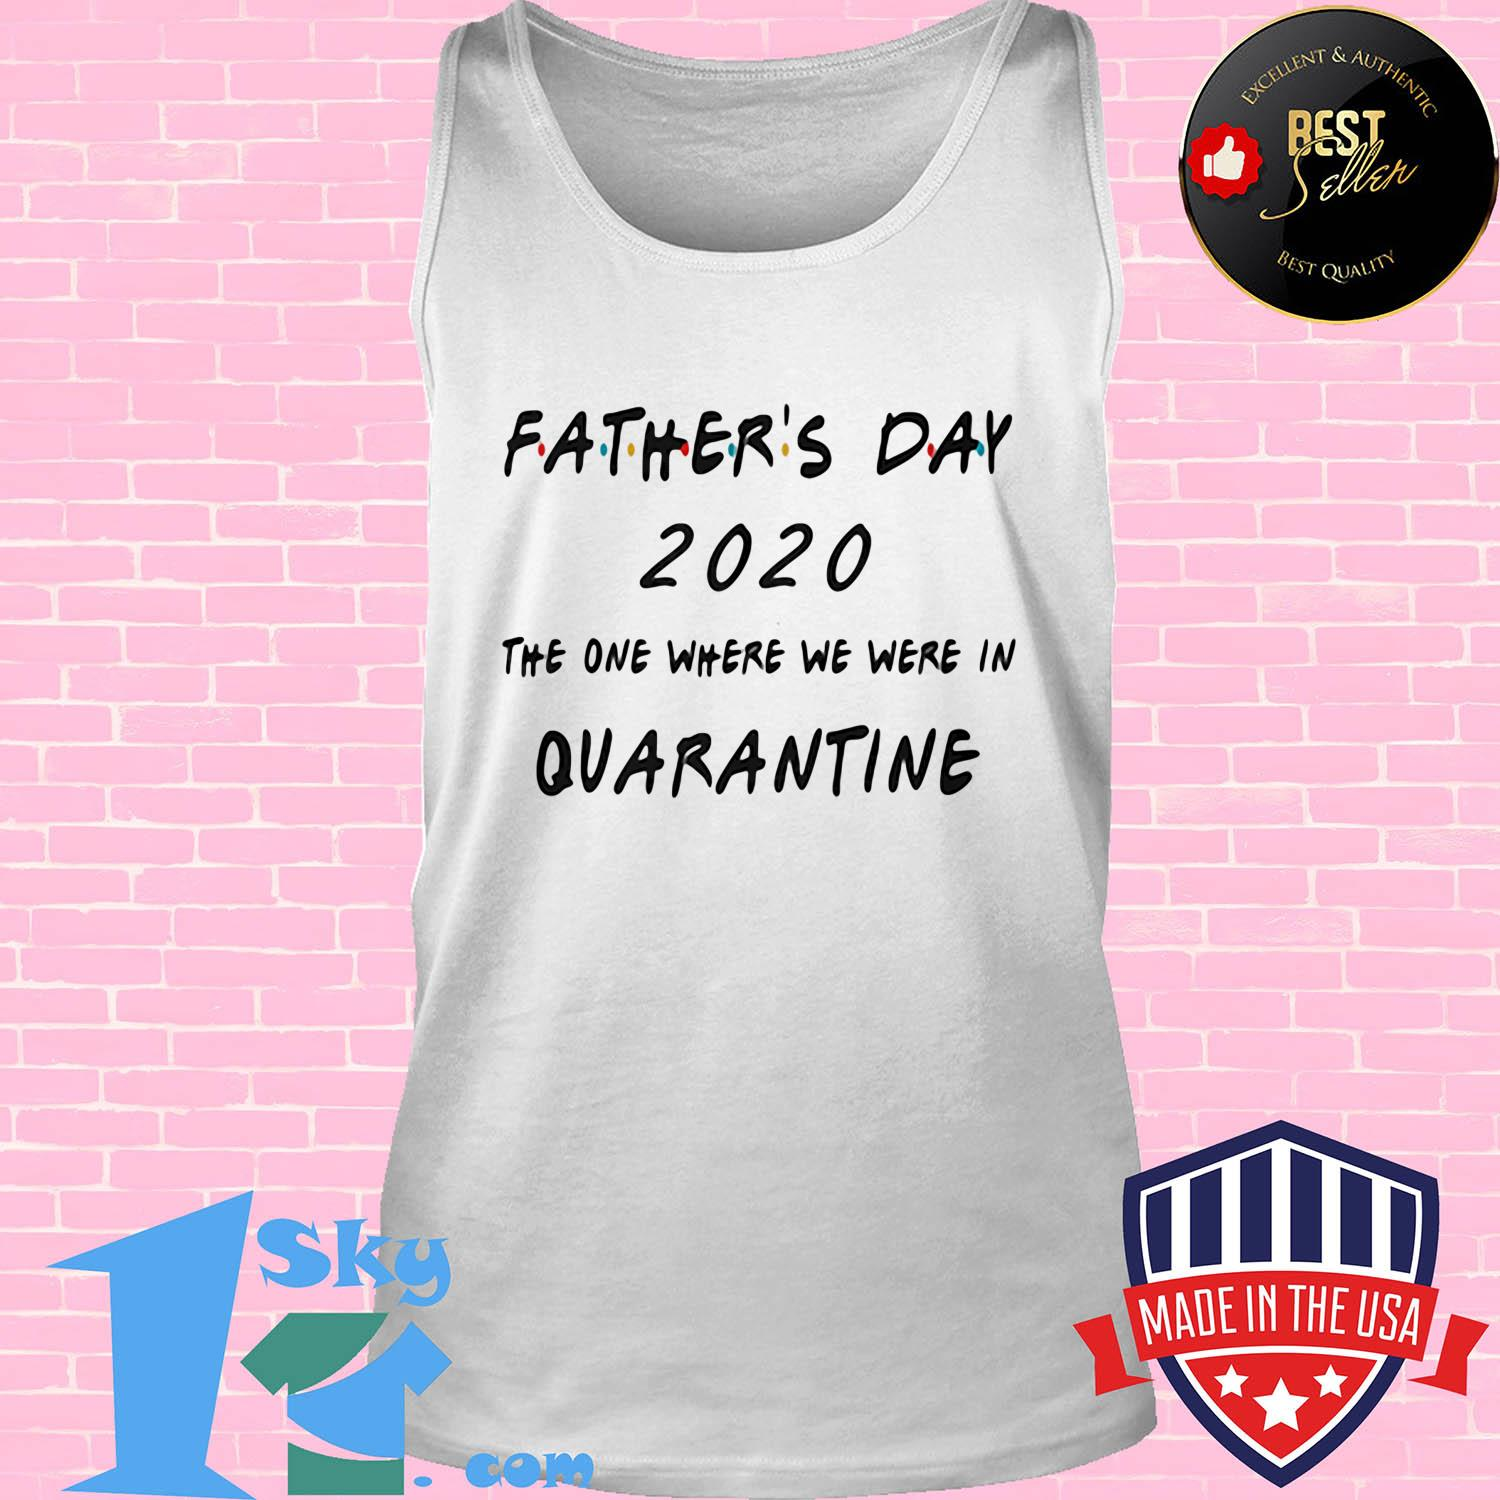 Father's Day 2020 the one where we were in quarantined shirt